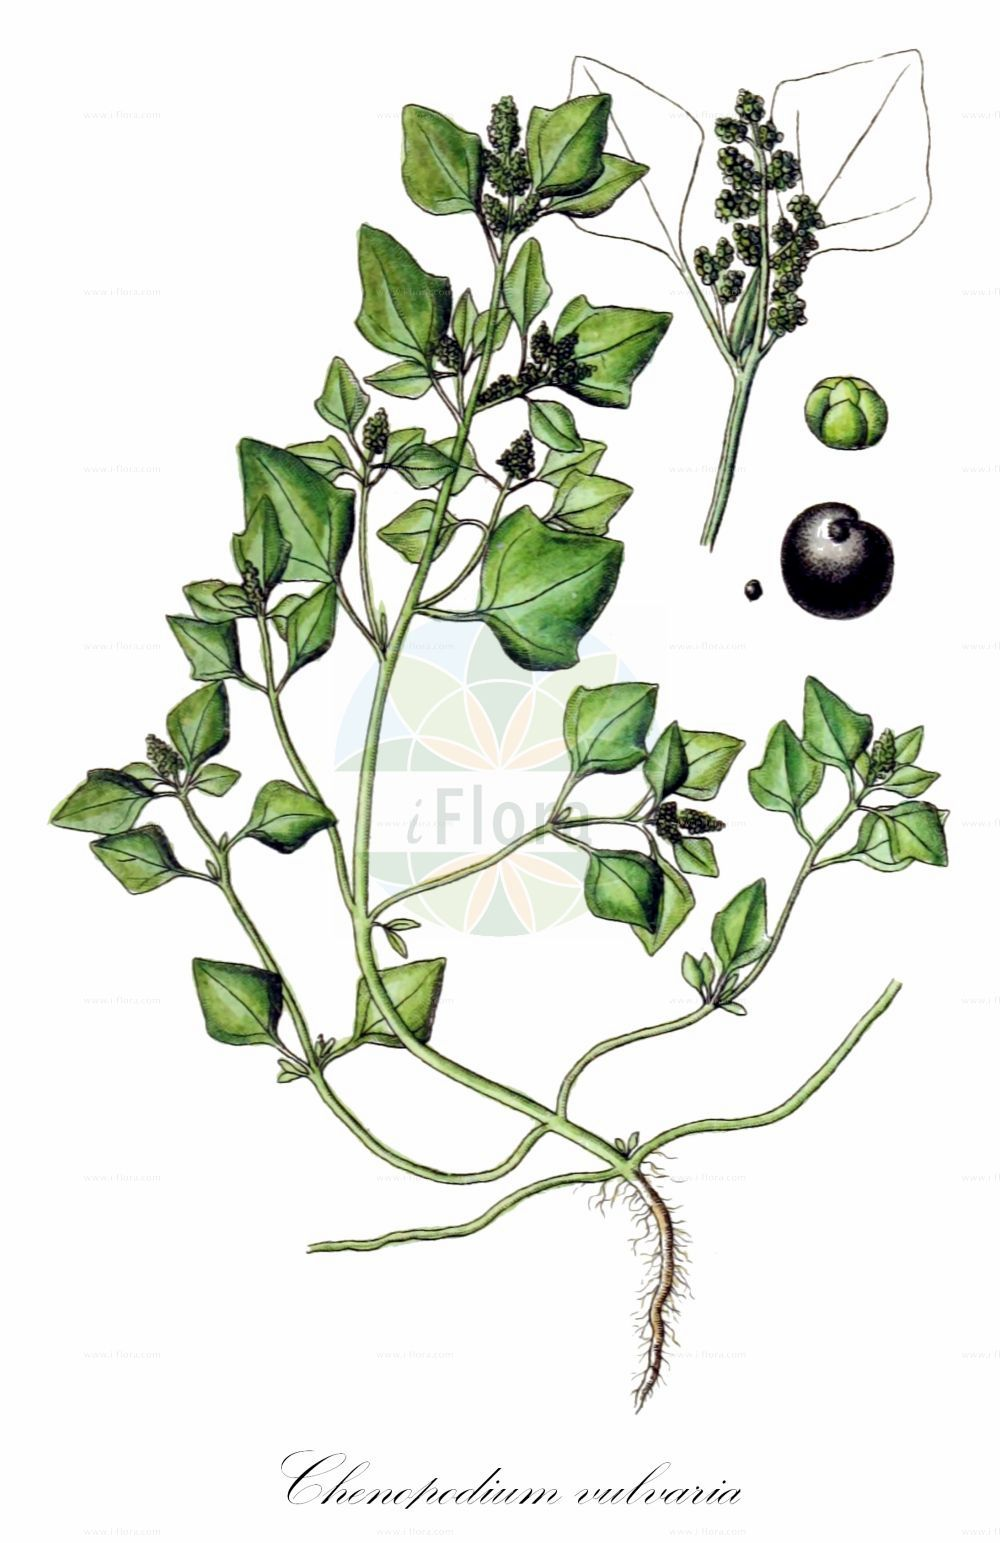 Historische Abbildung von Chenopodium vulvaria (Stinkender Gaensefuss - Stinking Goosefoot). Das Bild zeigt Blatt, Bluete, Frucht und Same. ---- Historical Drawing of Chenopodium vulvaria (Stinkender Gaensefuss - Stinking Goosefoot).The image is showing leaf, flower, fruit and seed.(Chenopodium vulvaria,Stinkender Gaensefuss,Stinking Goosefoot,Chenopodium foetidum,Chenopodium olidum,,Chenopodium,Gaensefuss,Goosefoot,Amaranthaceae,Fuchsschwanzgewaechse,Pigweed family,Blatt,Bluete,Frucht,Same,leaf,flower,fruit,seed,Sturm (1796f))